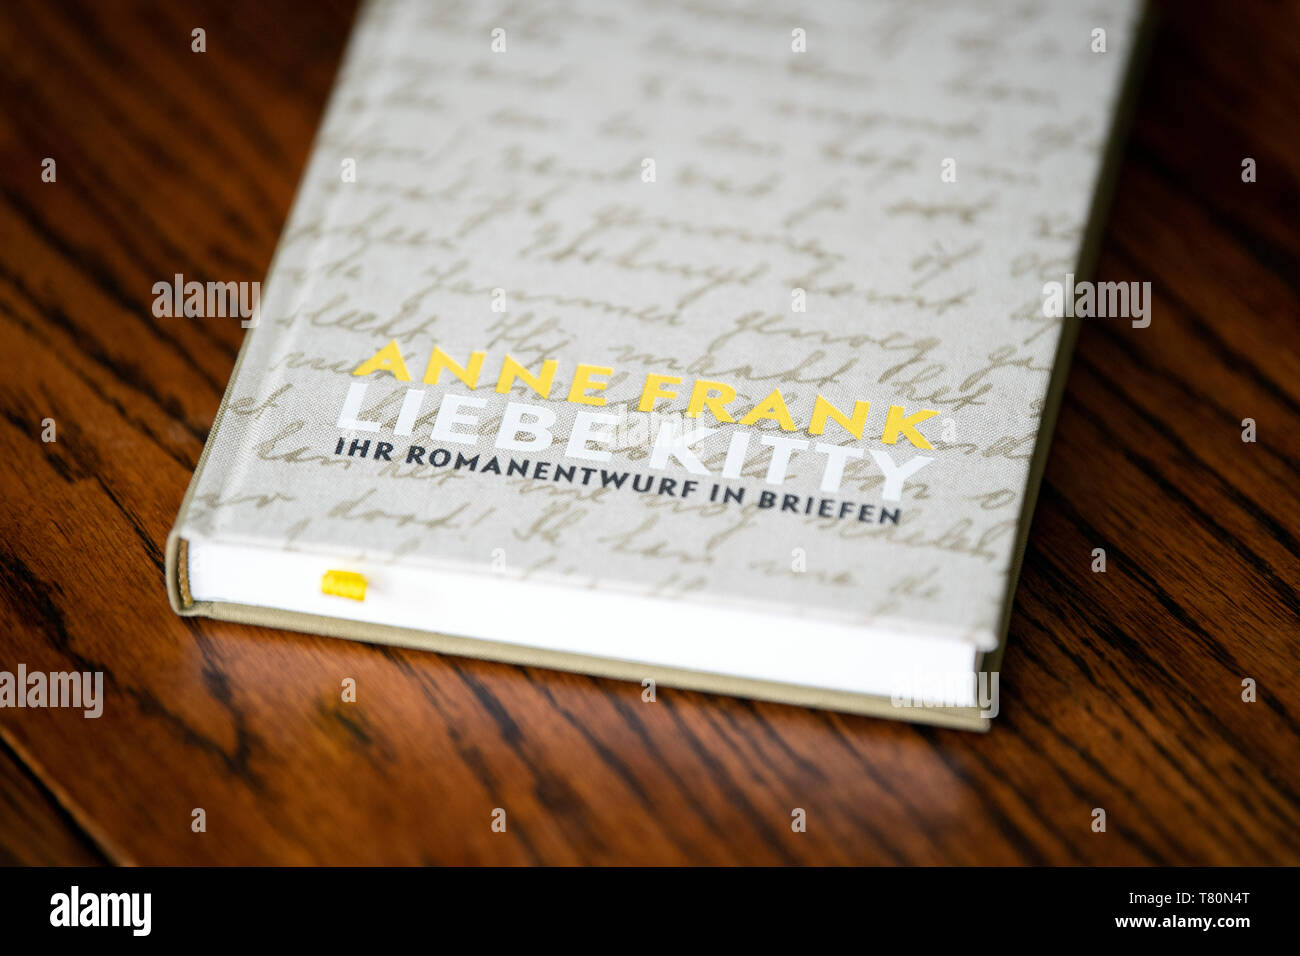 Berlin, Germany. 09th May, 2019. The newly published book 'Anne Frank - Liebe Kitty'. 'Dear Kitty' is the imaginary addressee of many diary letters from Anne Frank. (for 'Love Kitty' - Anne Frank's novel is rediscovered) Credit: Soeren Stache/dpa/Alamy Live News - Stock Image